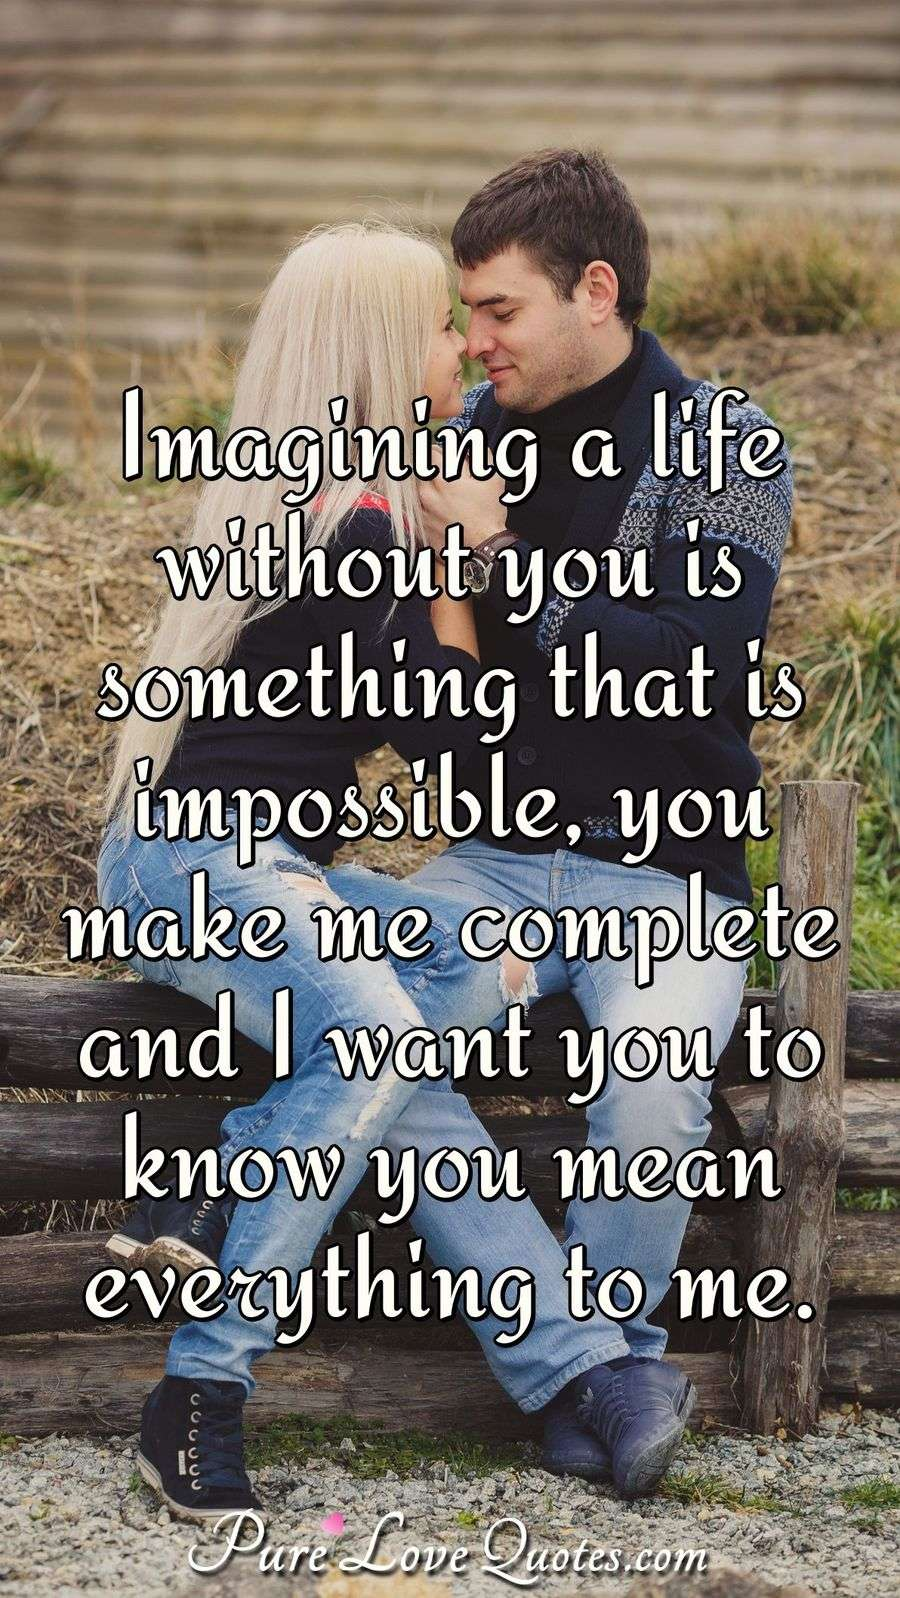 Imagining a life without you is something that is impossible, you ...